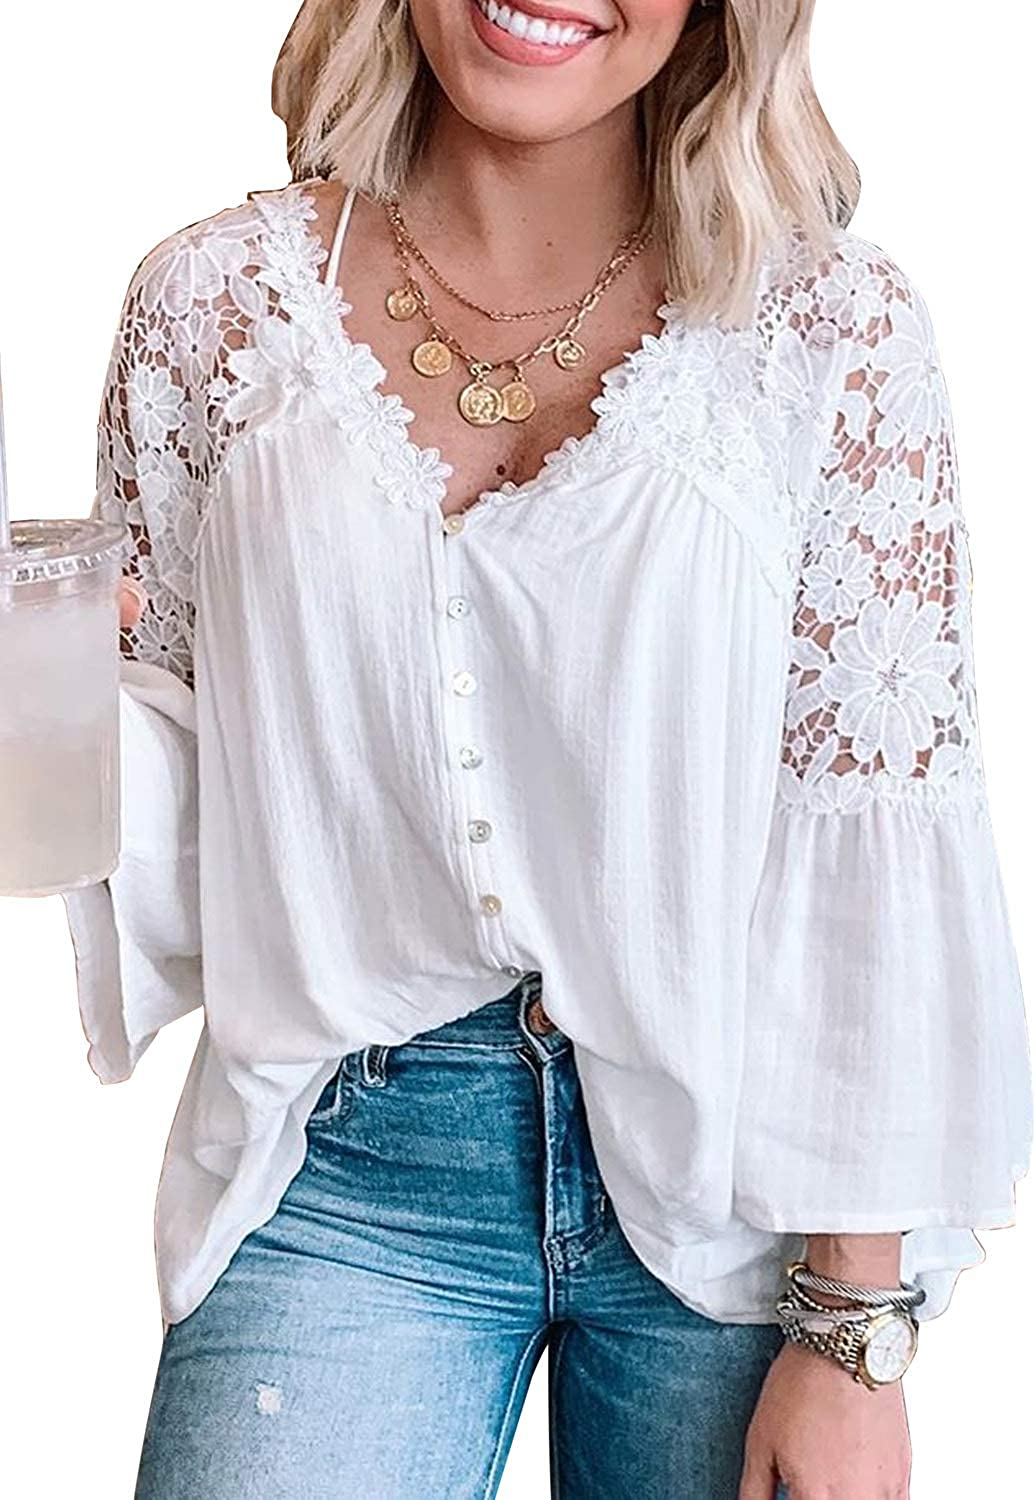 Asvivid V Neck Crochet Lace Tops for Women Casual Loose Puff Sleeve Fall Shirts Flowy Chiffon Blouses